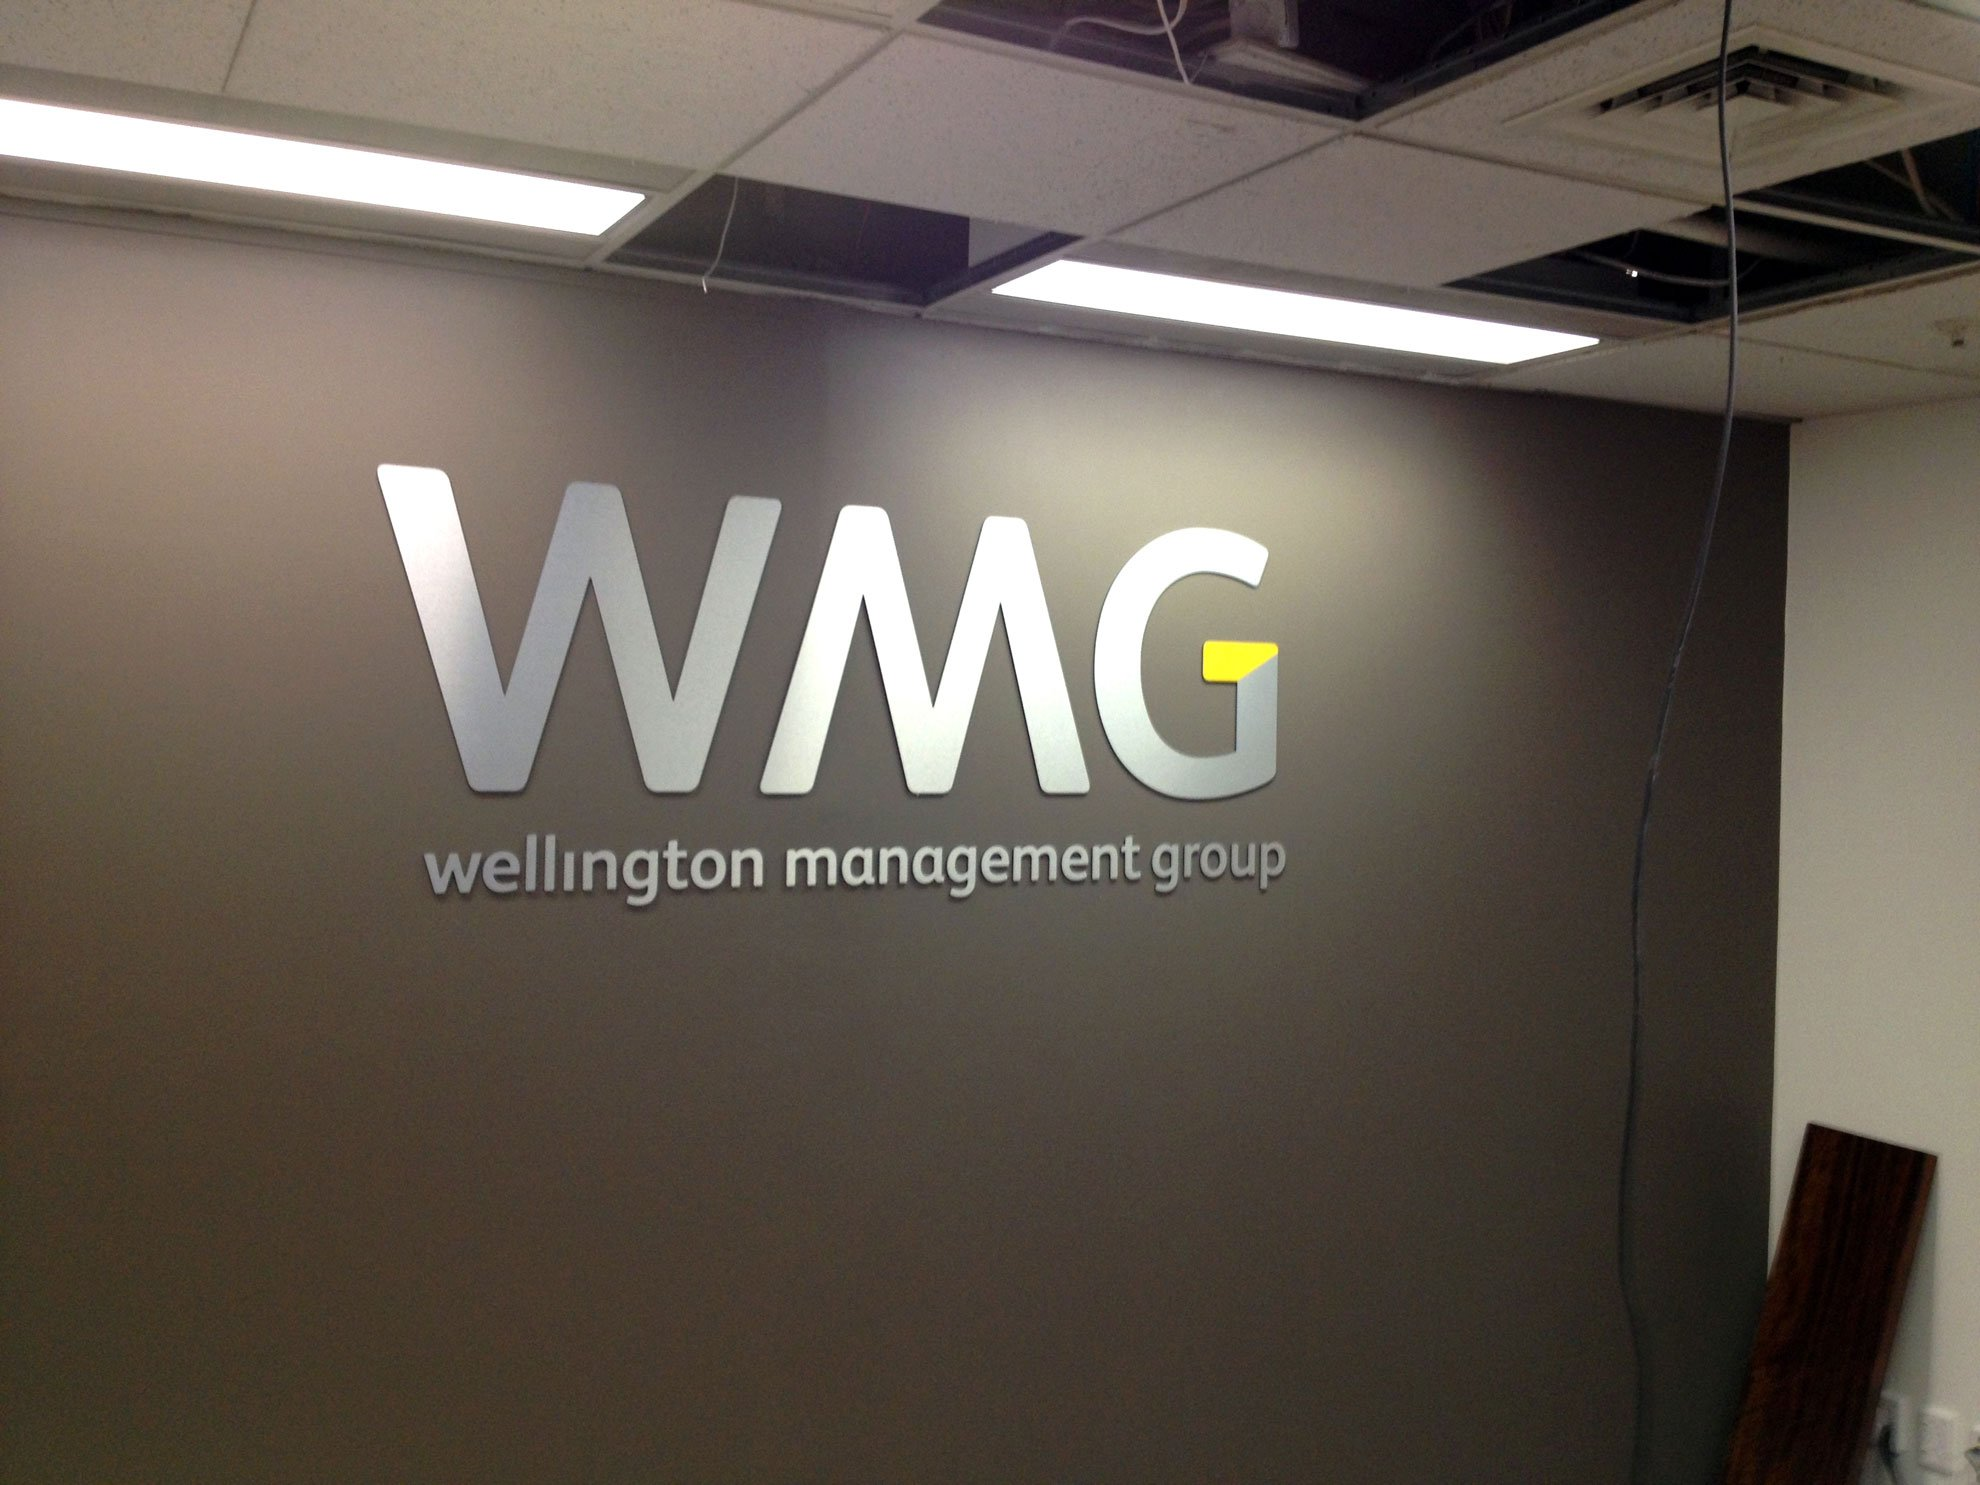 4mm thick laser cut brushed silver ACM letters installed onto office reception wall